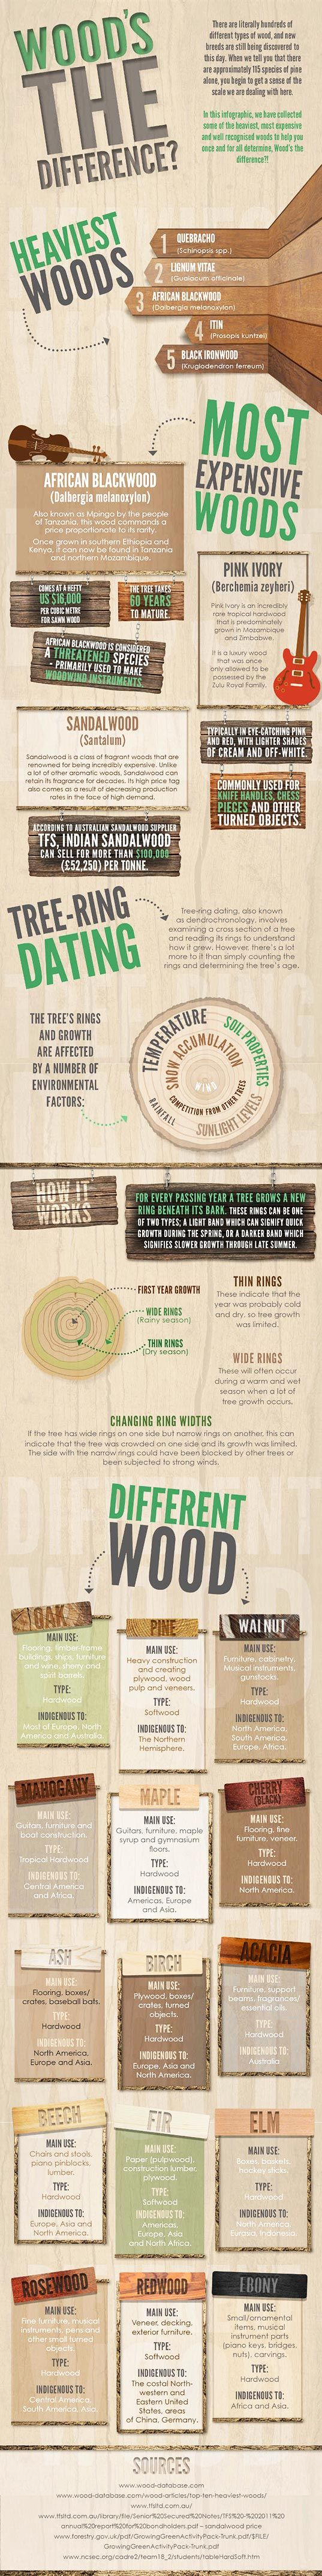 wood, infographic, wood types, #woodtypes infographic, #greendesign, sustainable design,#woodfurniture, wooden furniture Wood's the Difference  http://inhabitat.com/infographic-woods-the-difference/